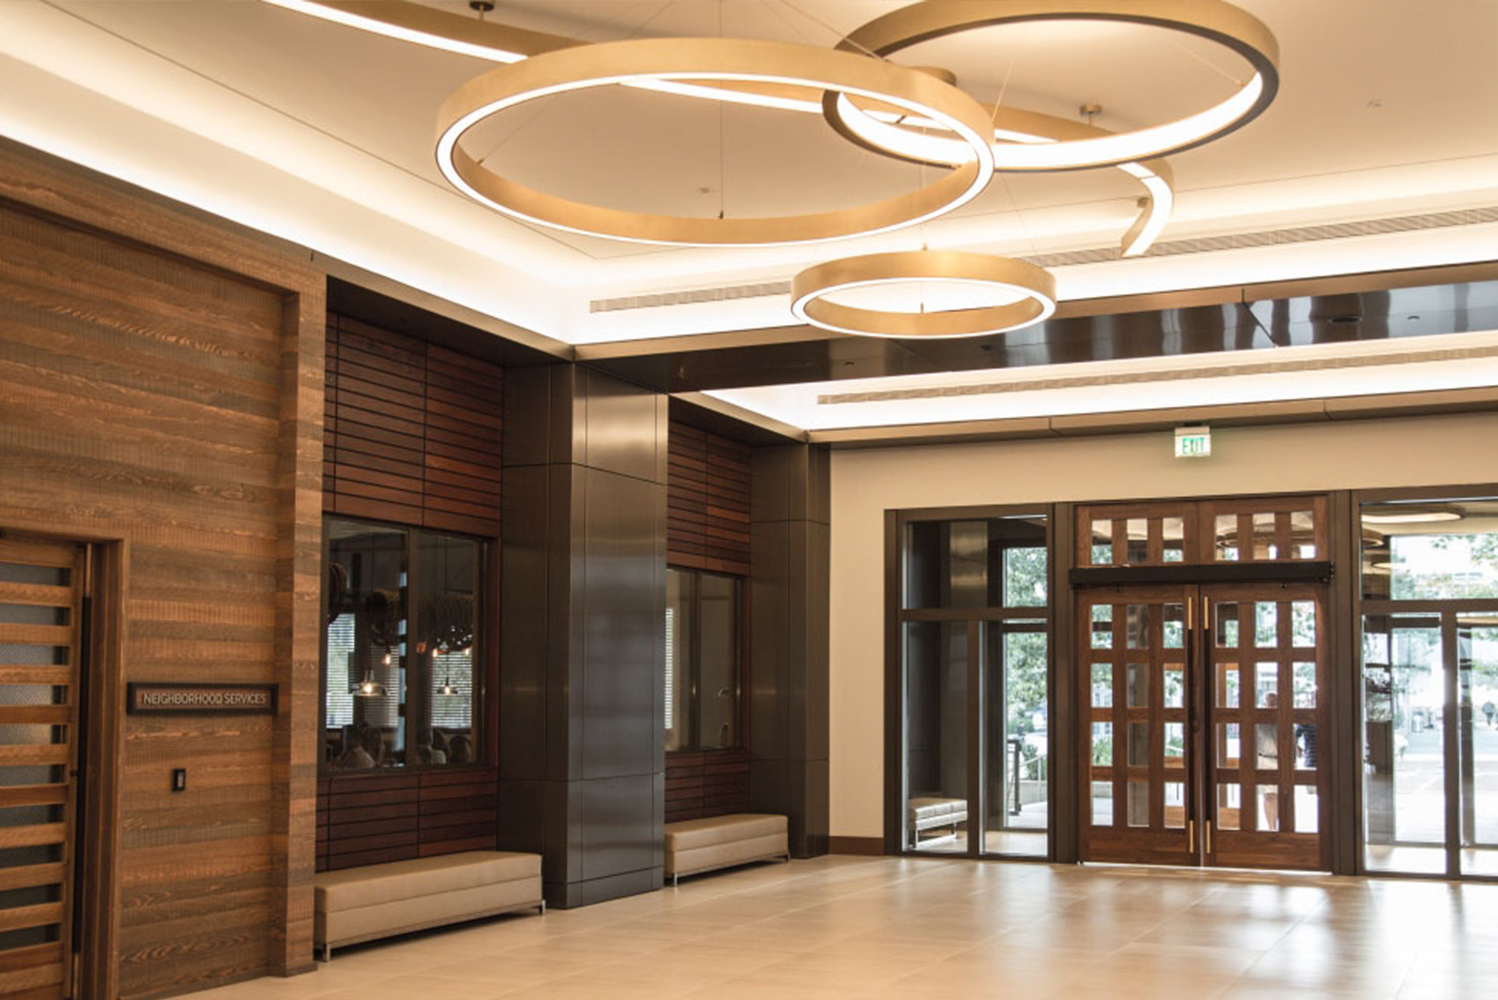 Wilson Associates, interior architect for Omni Frisco, included regional nuances throughout the interior, including its love of football and for the Dallas Cowboys.